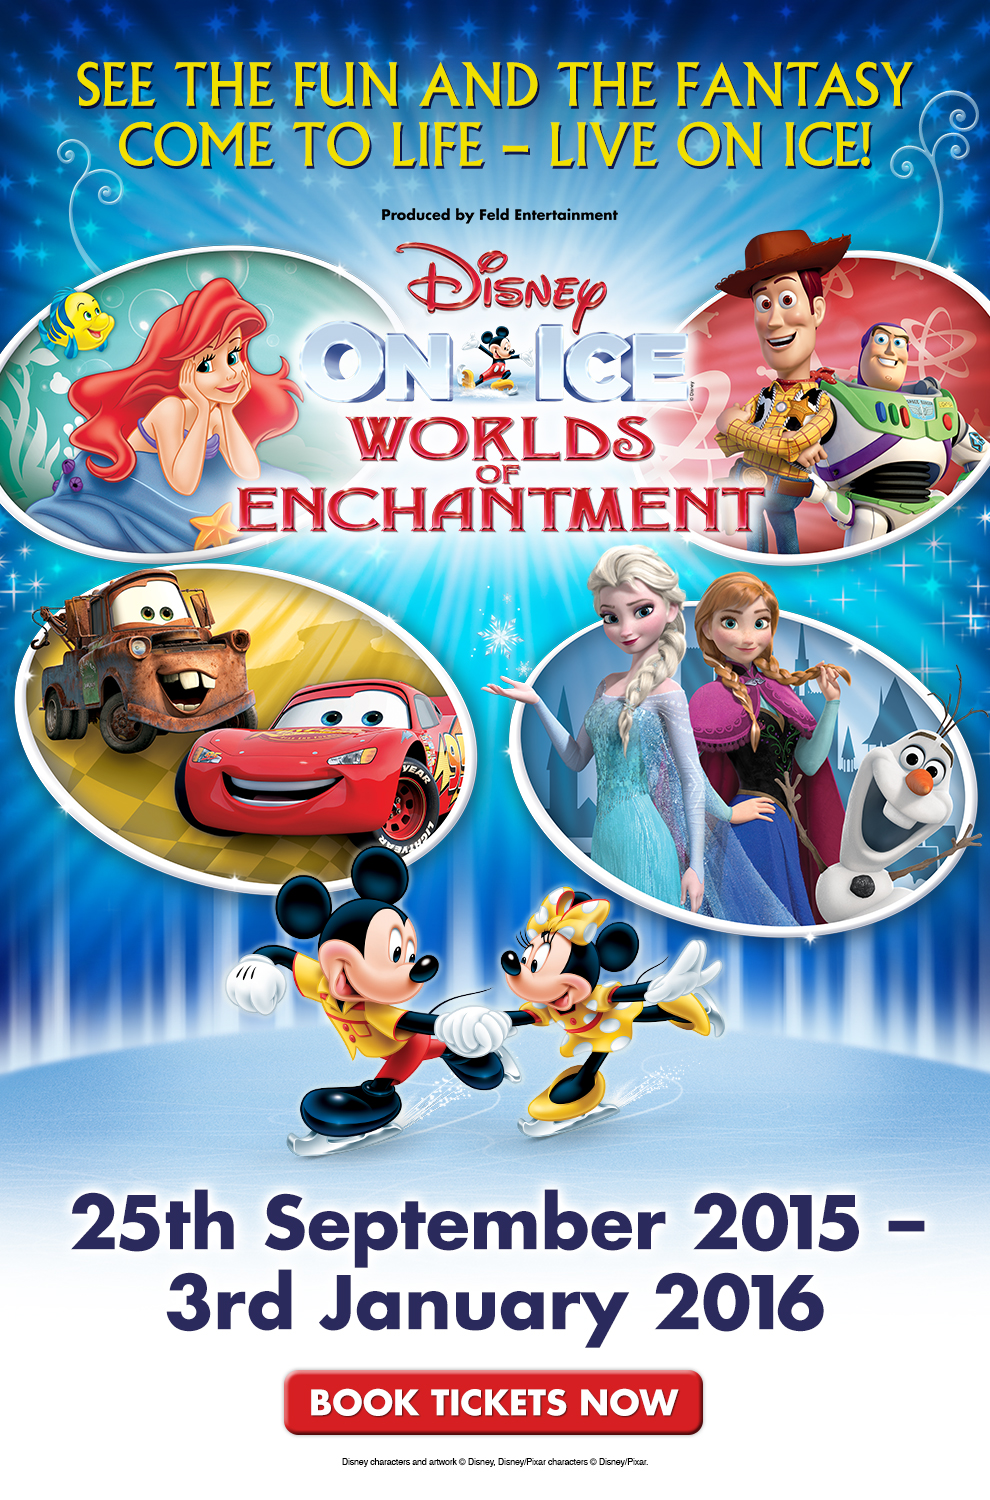 Disney On Ice Presents World's of Enchantment: Birmingham